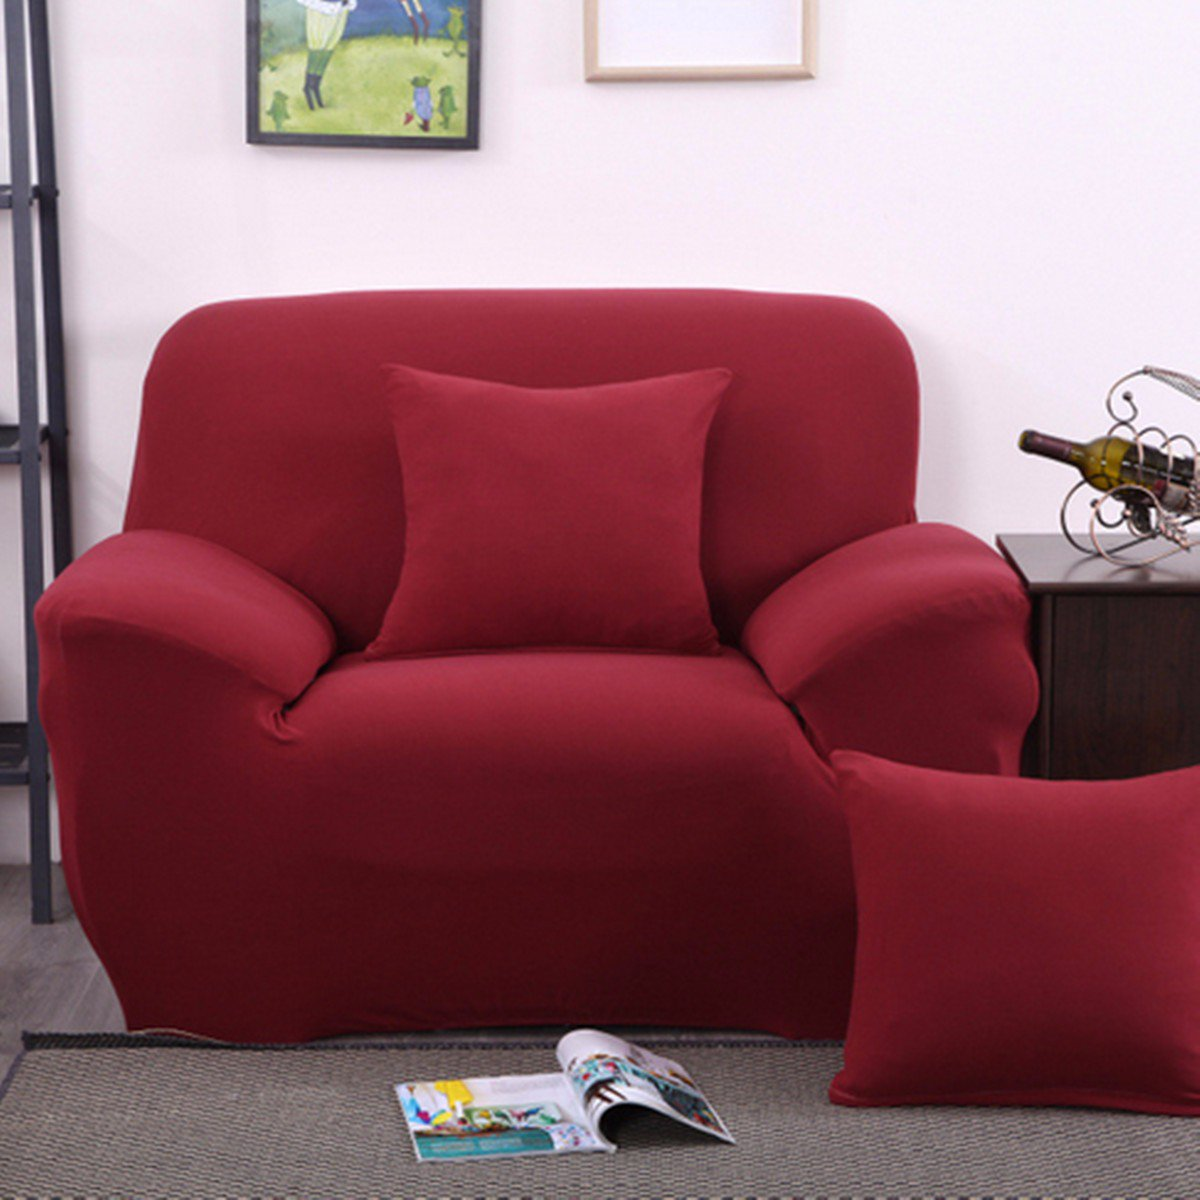 Elastic Stretch Fabric Sofa couchcover Furniture Slipcover Pet Dog  Sectional Corner Couch Covers Fit One Seat Sofa